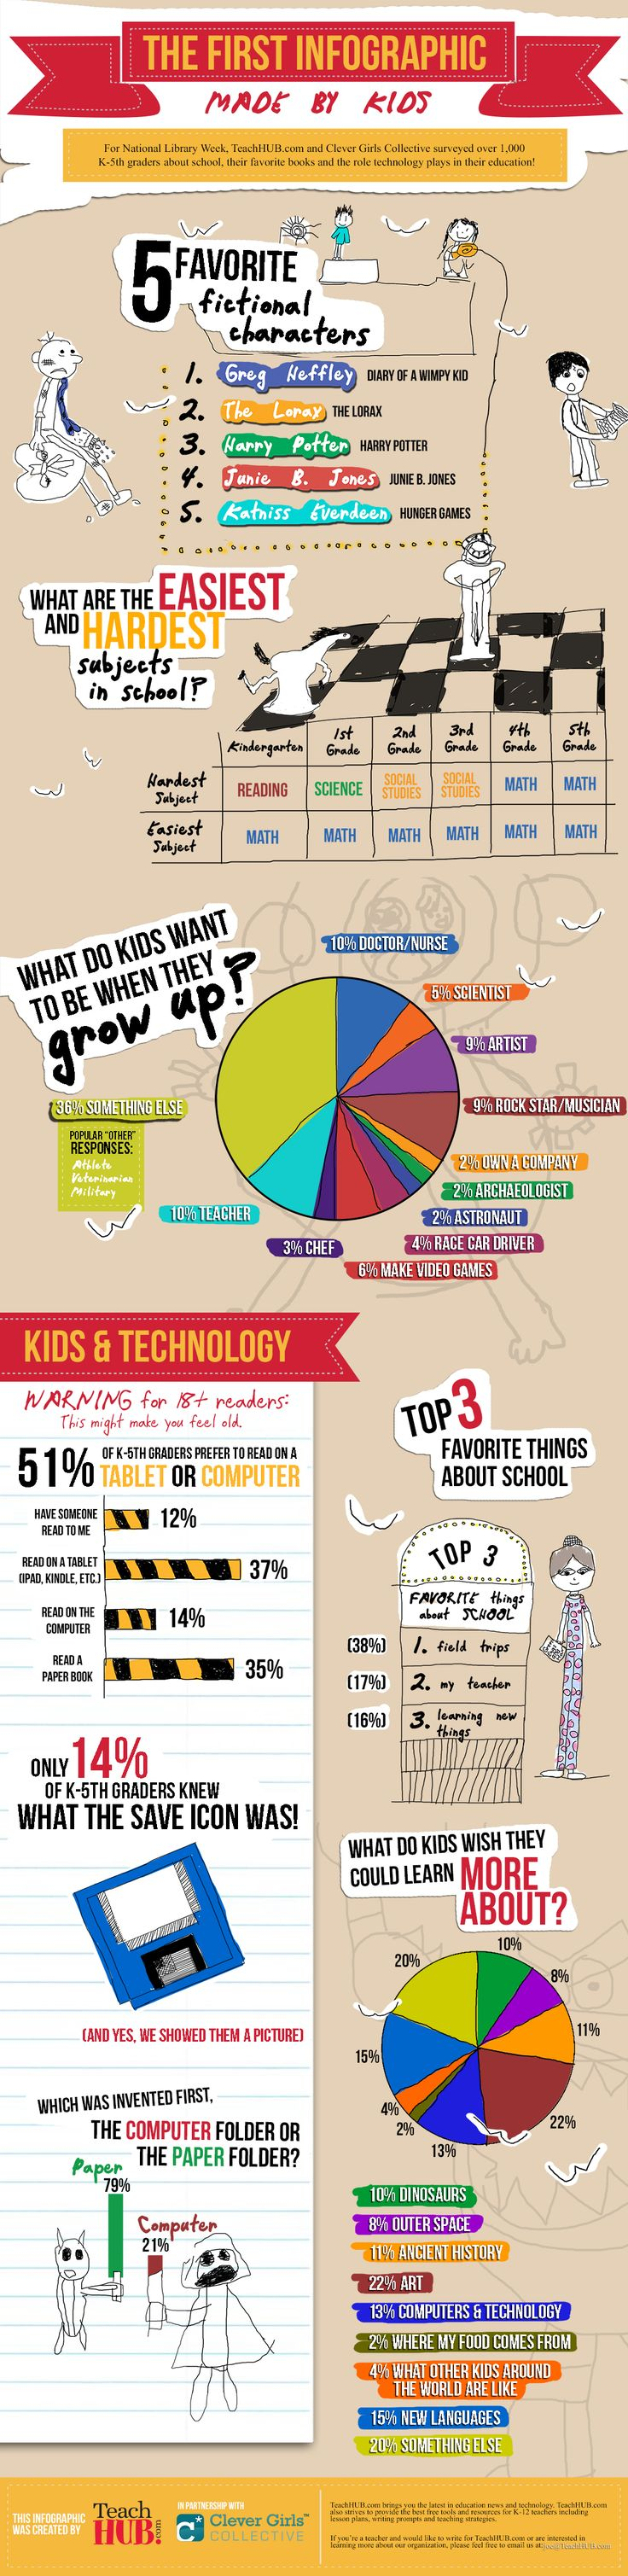 TeachHUB First Infographic made by kids  National Library Week #CleverTeachers #NLW13